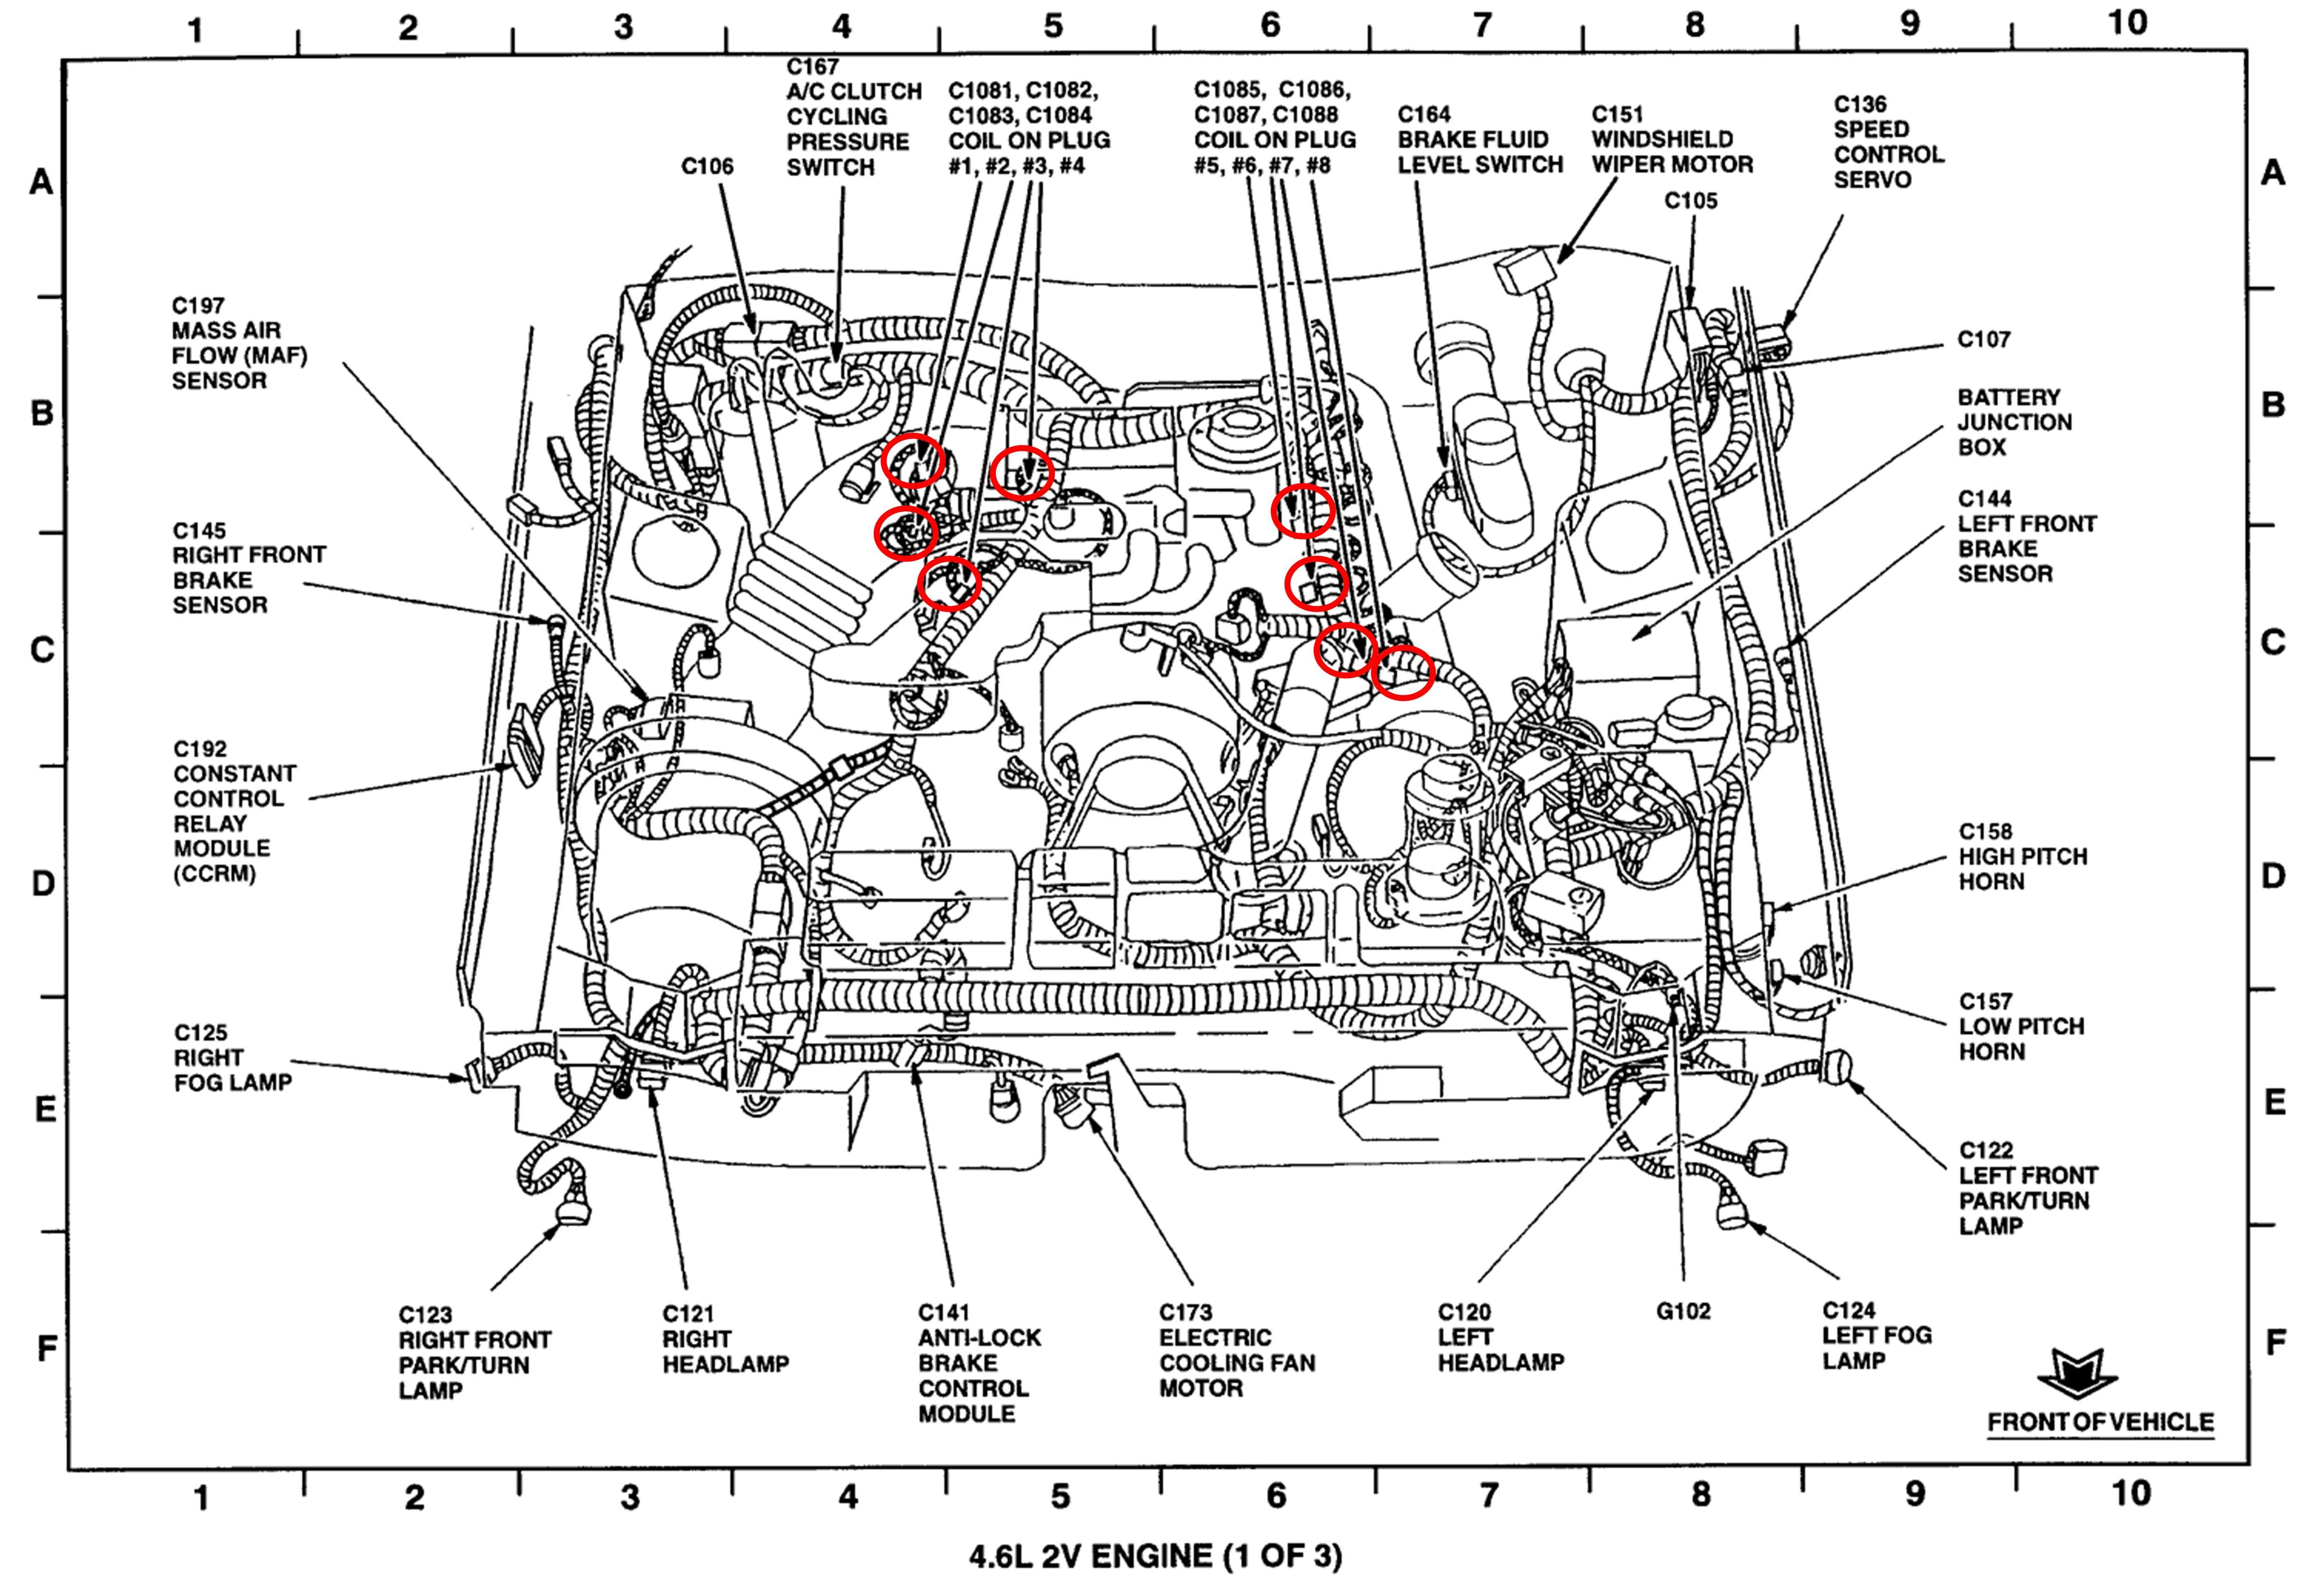 template 3?w=736&h=504 engine diagram 2002 ford mustang 3 8 engine engine problems and 1999 mustang wiring diagram at bayanpartner.co